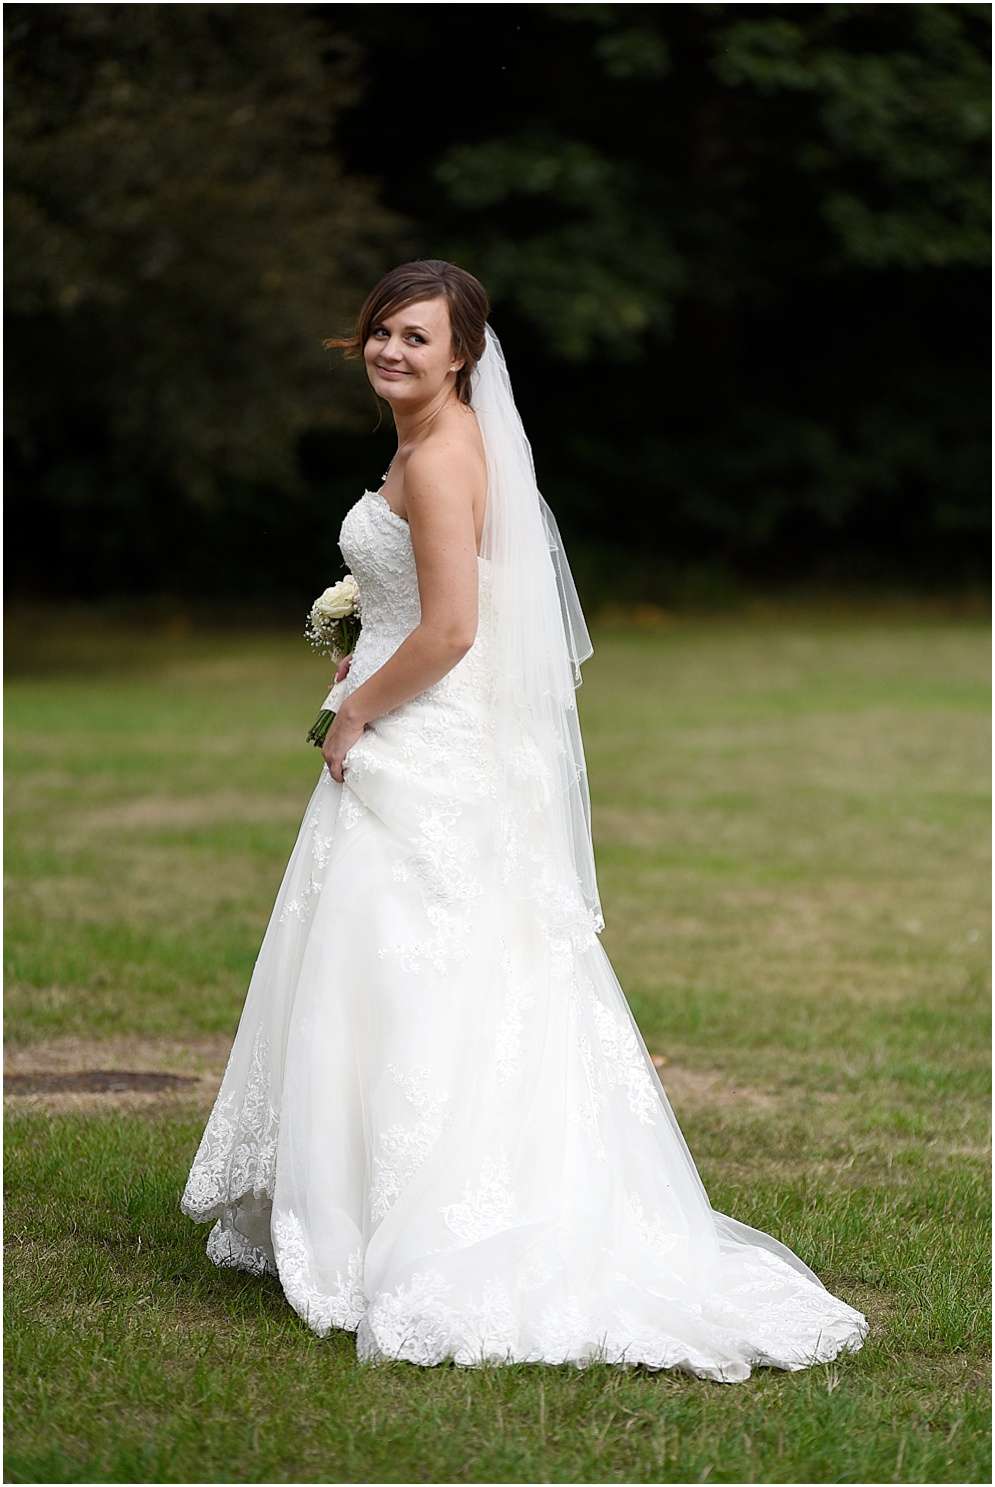 Beautiful bride pictured on her wedding day.